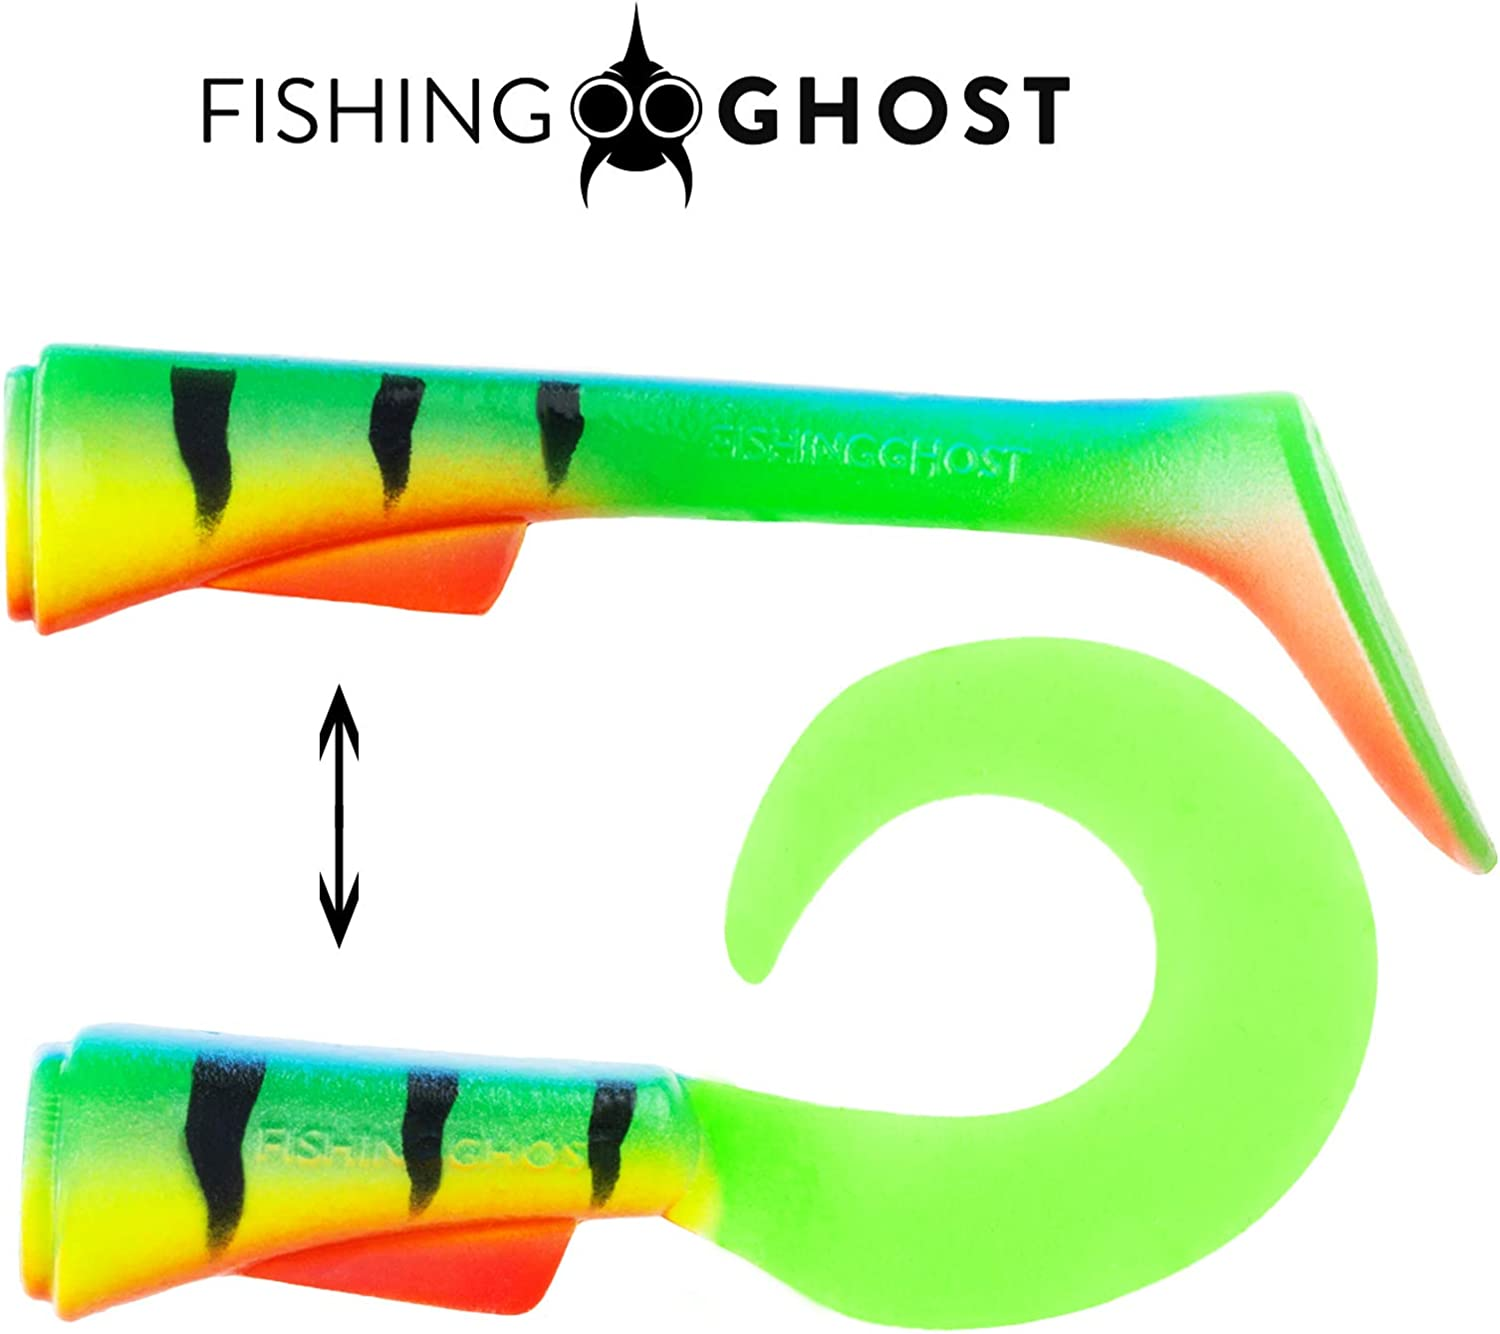 FISHINGGHOST/® Grumpy SWITCH 15cm fishing lures for pike fishing Swimbait bait for pike fishing with interchangeable tail 23-28gr Extreme swimming action Softbait